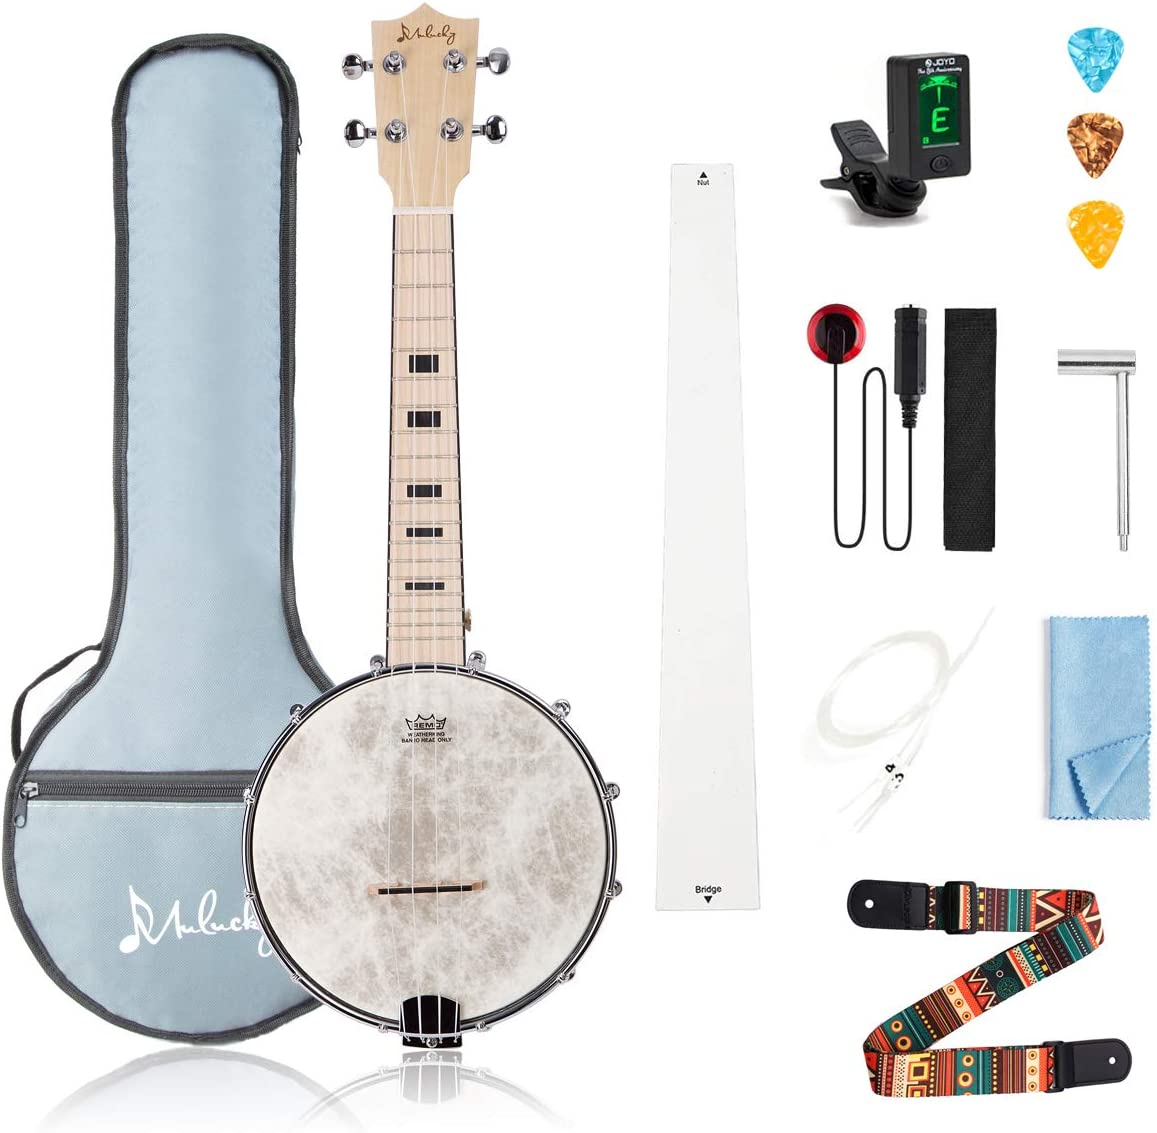 Mulucky 4 String Banjo Ukulele Concert 23 Inch Remo Drumhead Maple Body Beginner Kit With Truss Rod Gig Bag Tuner String Strap Picks – BU802